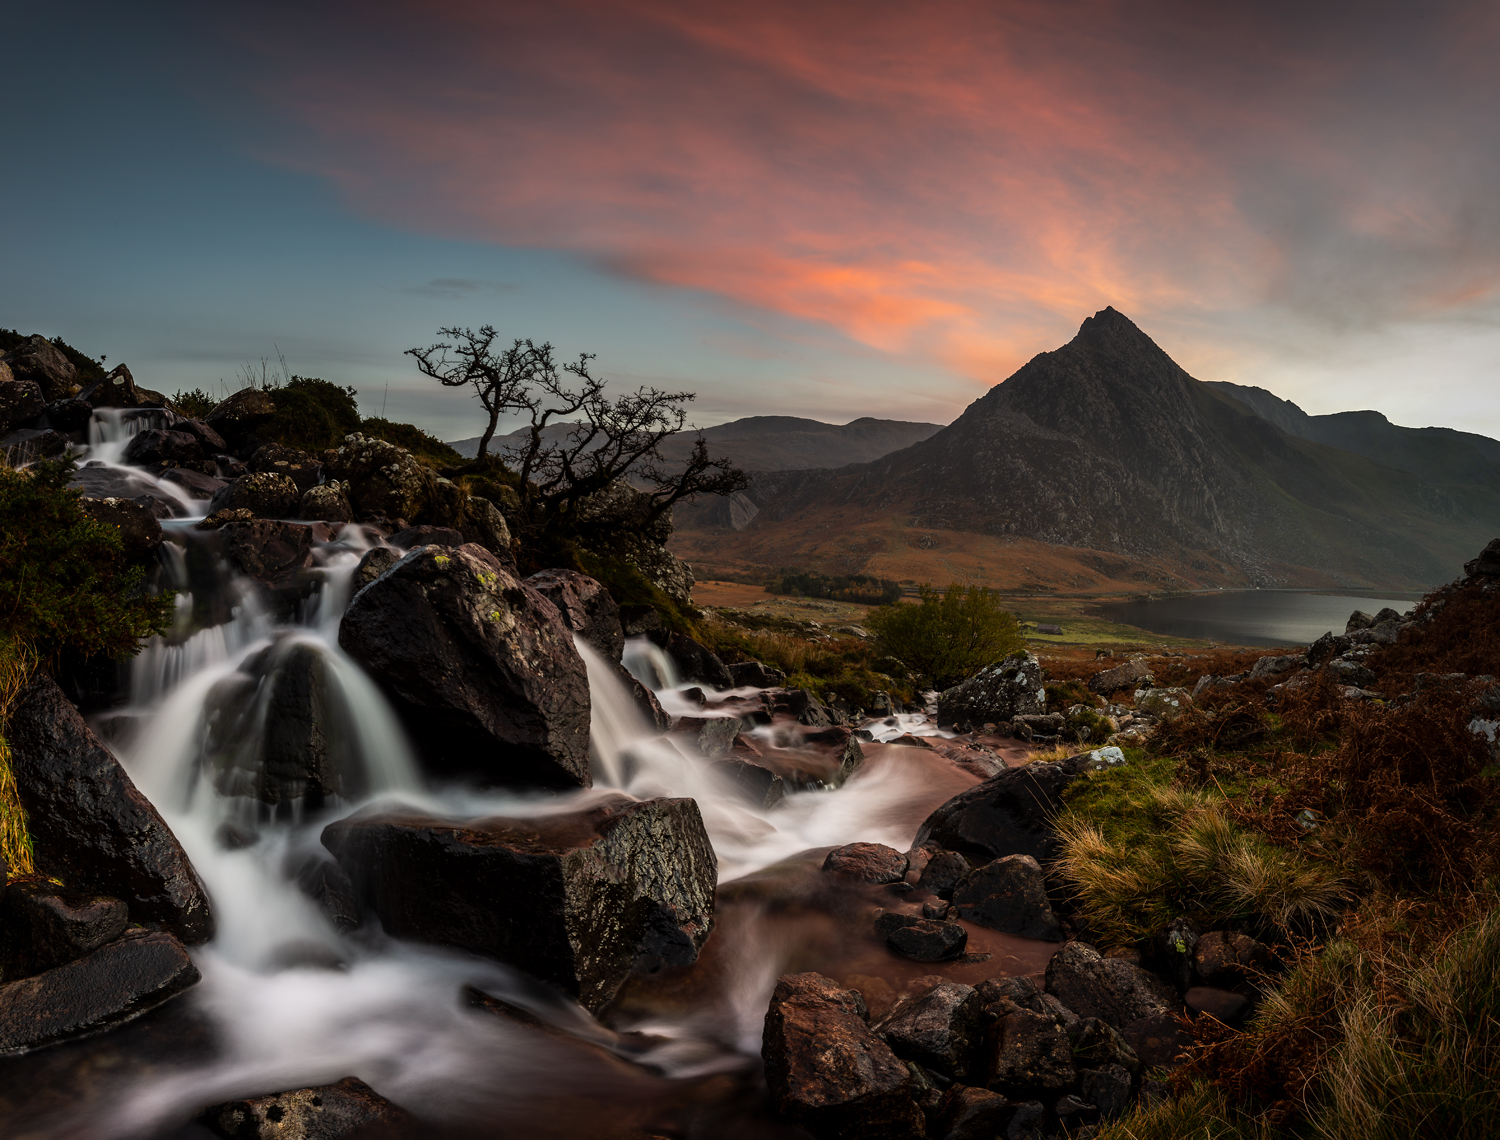 View to Tryfan from Afon Lloer, Snowdonia National Park. Photography workshops with Nigel Forster